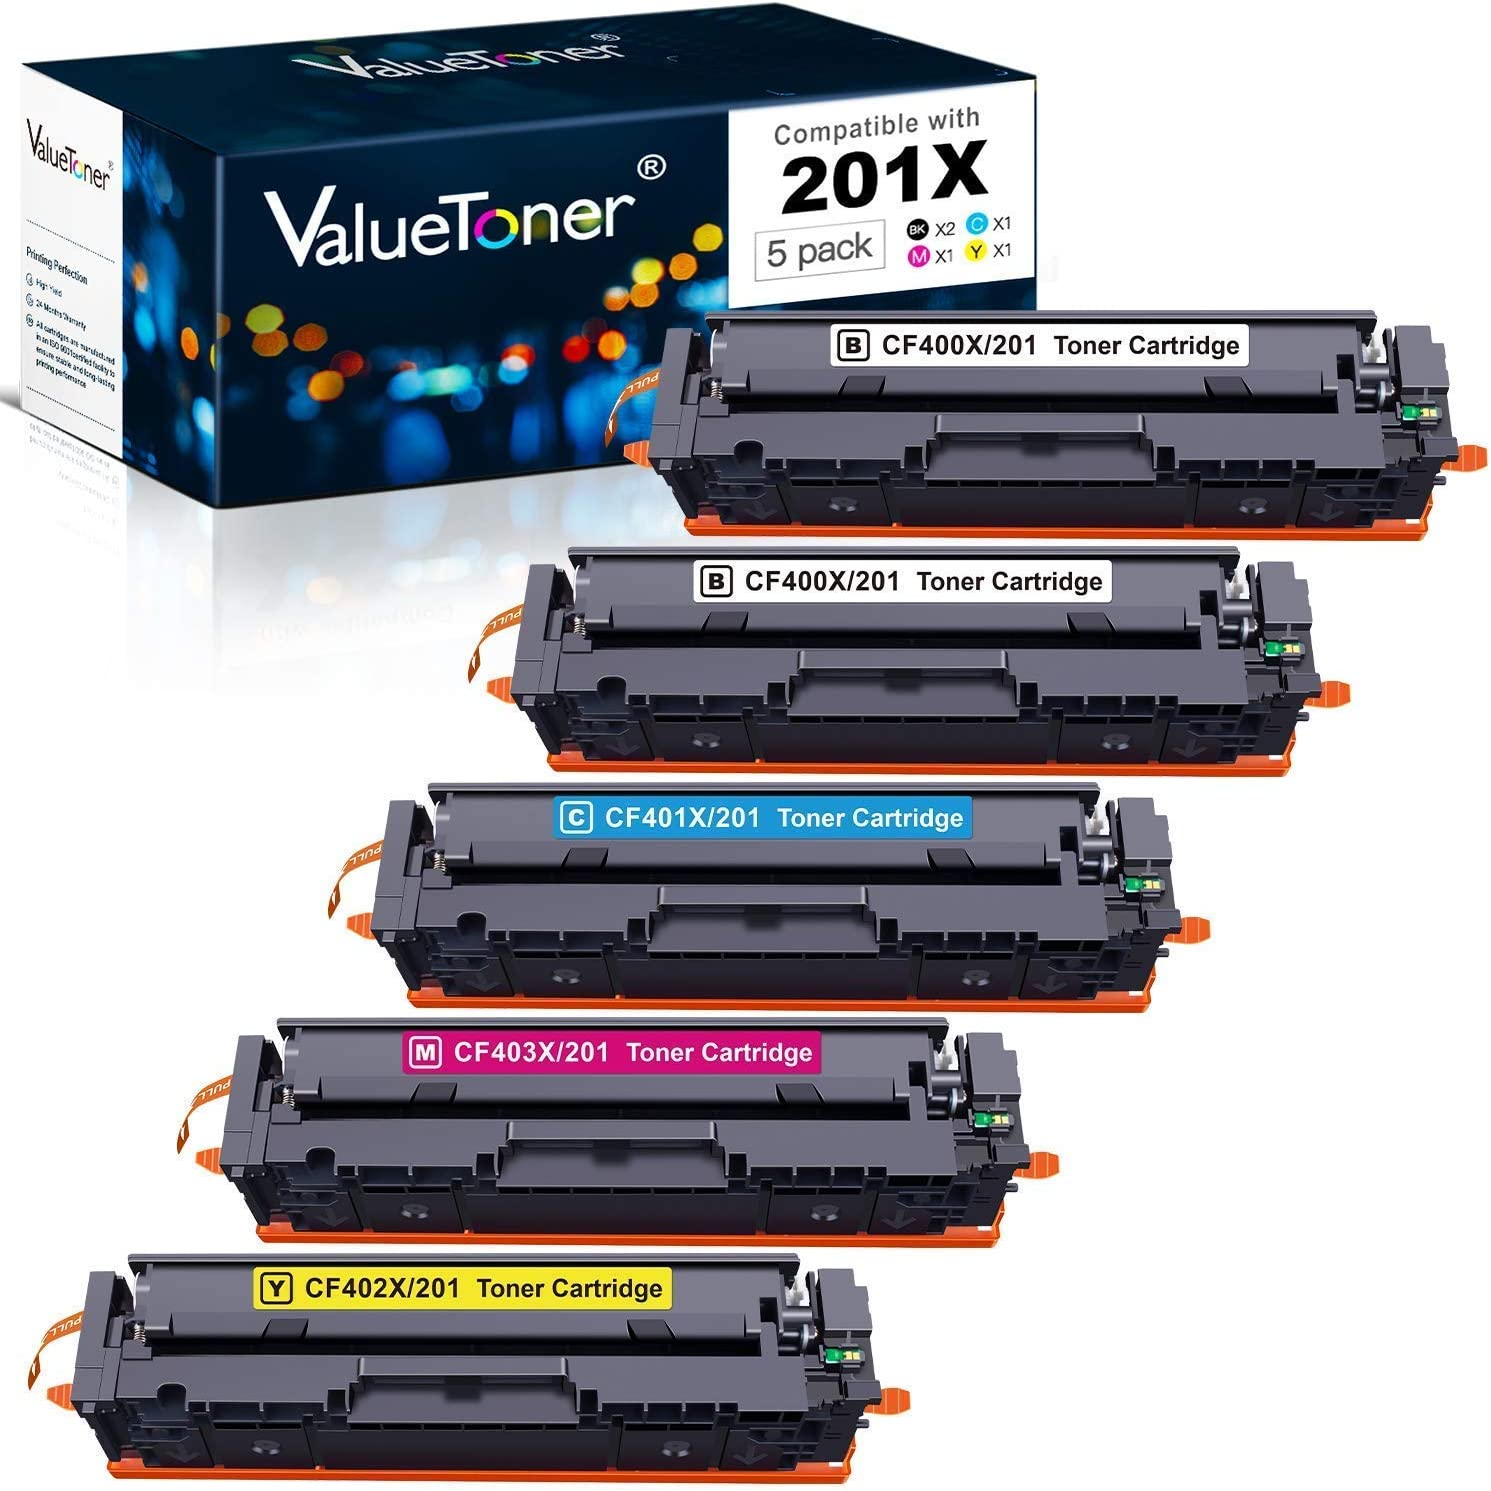 Valuetoner Compatible Toner Cartridges Replacement for HP 201X 4 Pack (Black, Cyan, Magenta, Yellow) Bundled with 1 Black, Total 5 Pack